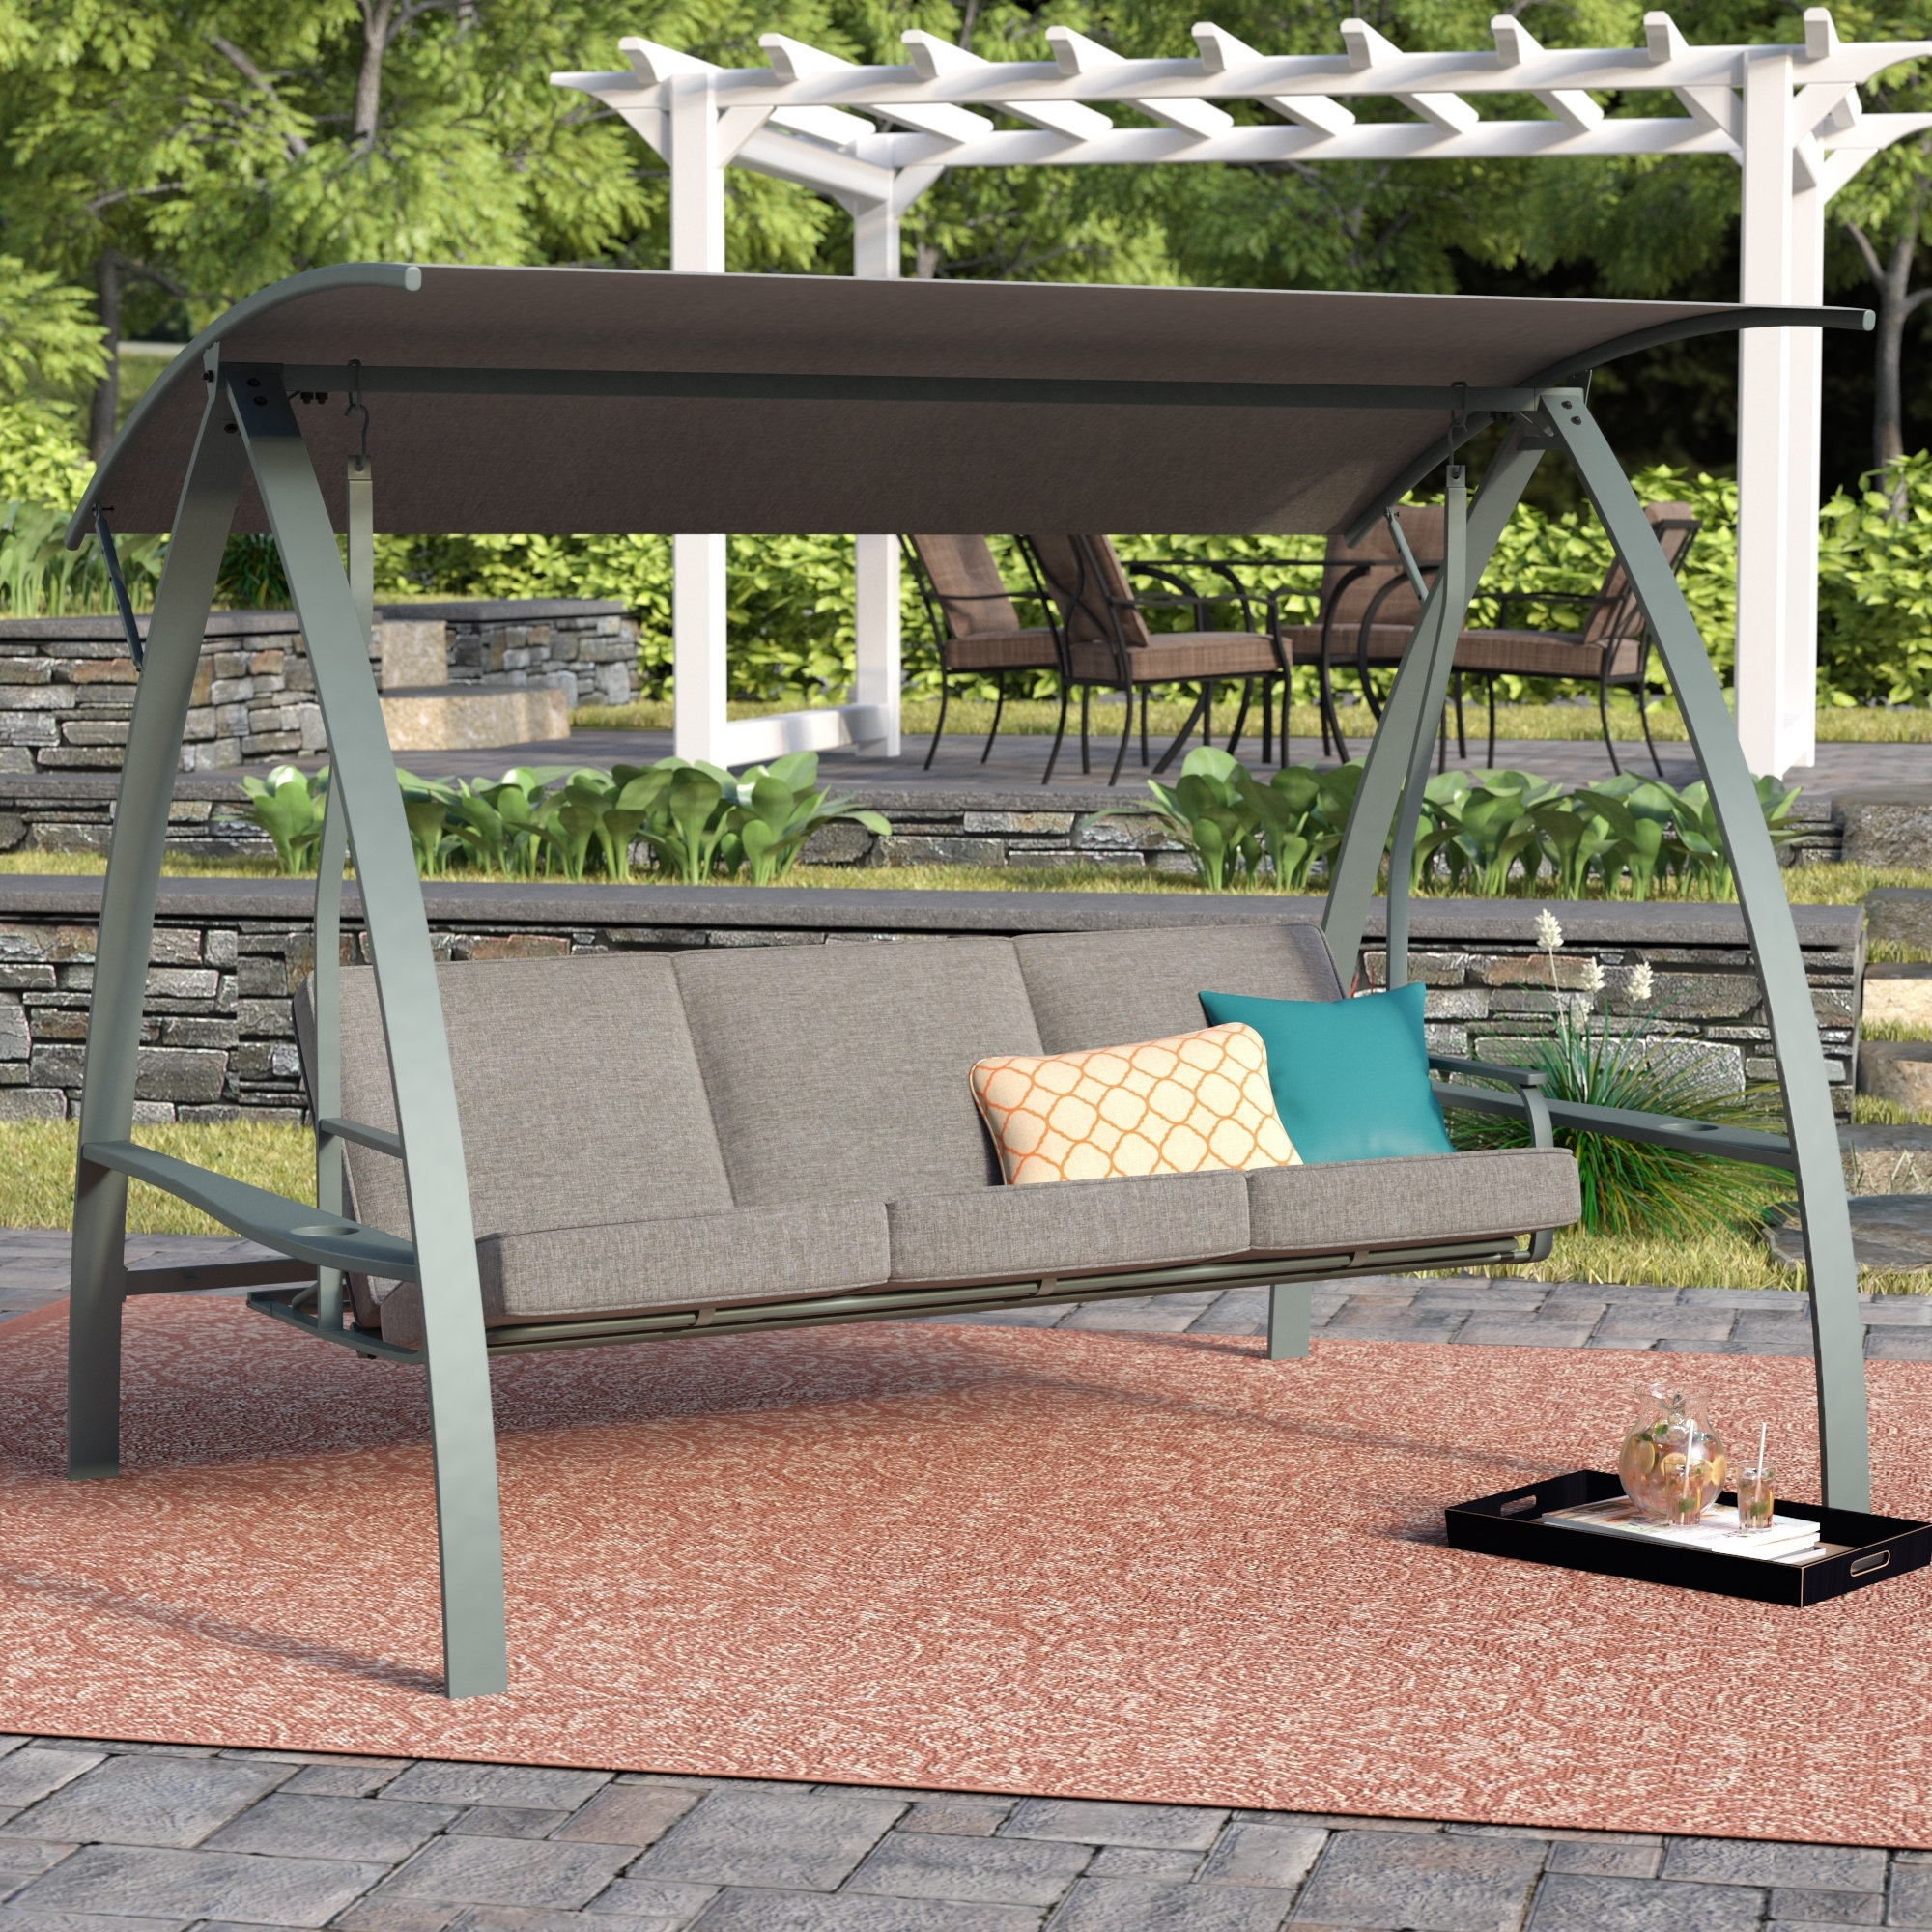 How To Build A Free Standing Frame For Porch Swing